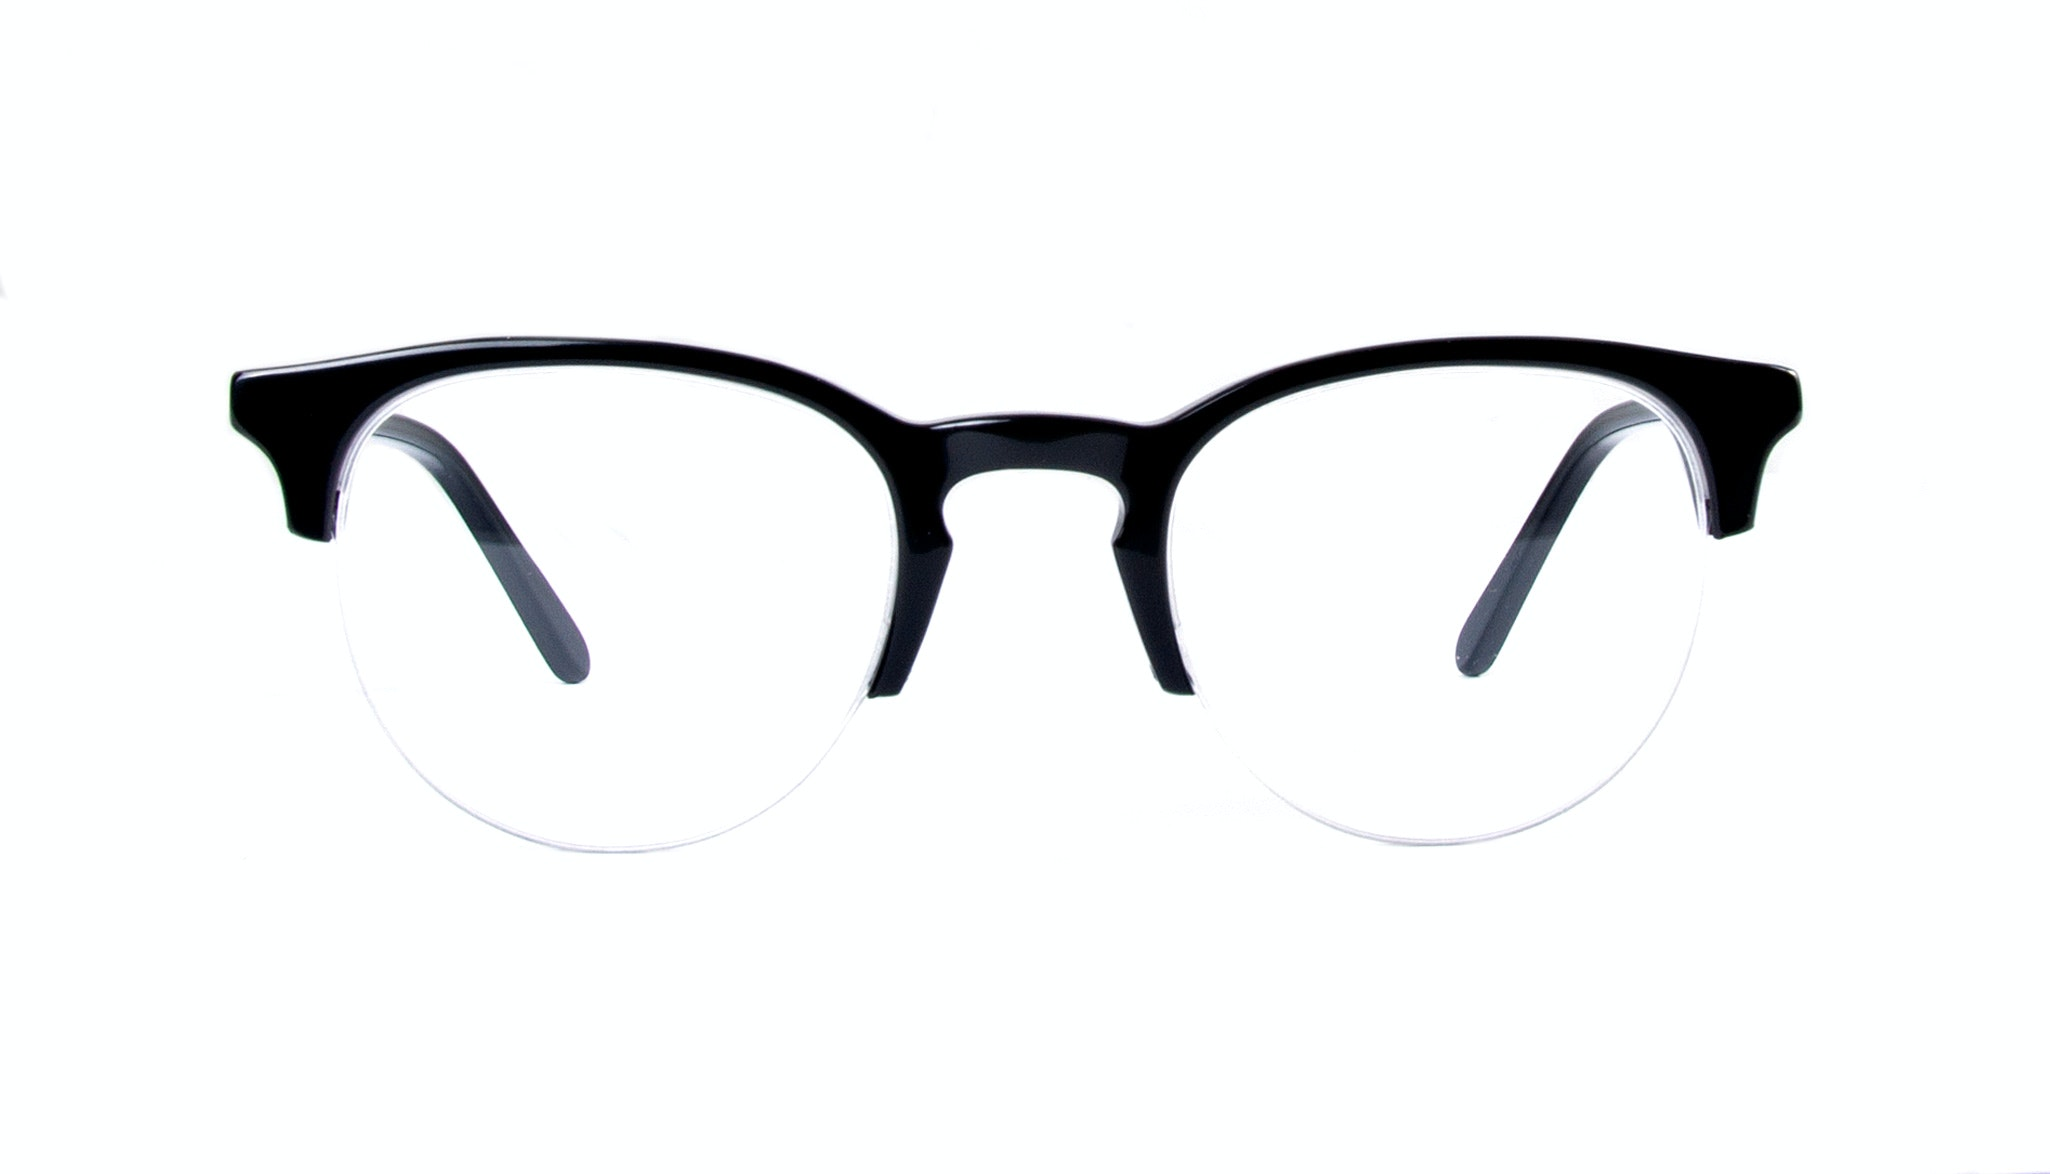 Affordable Fashion Glasses Round Semi-Rimless Eyeglasses Men Women Cult Light Onyx Front